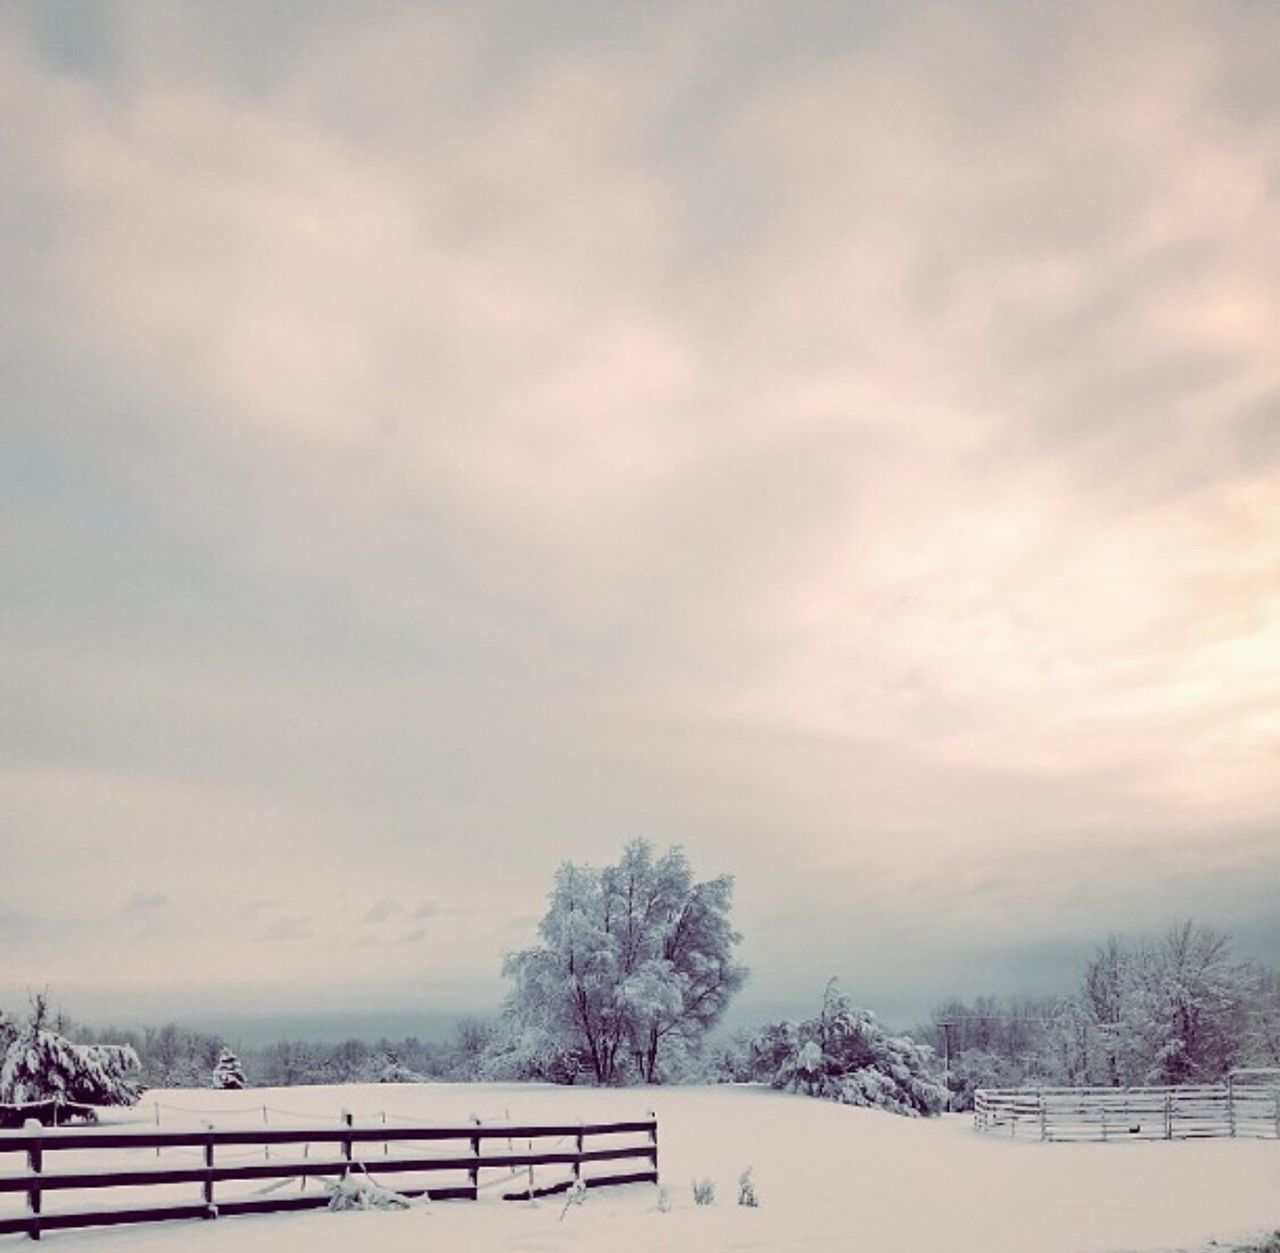 cold temperature, snow, winter, weather, nature, beauty in nature, sky, tree, cloud - sky, bare tree, tranquility, scenics, no people, outdoors, landscape, day